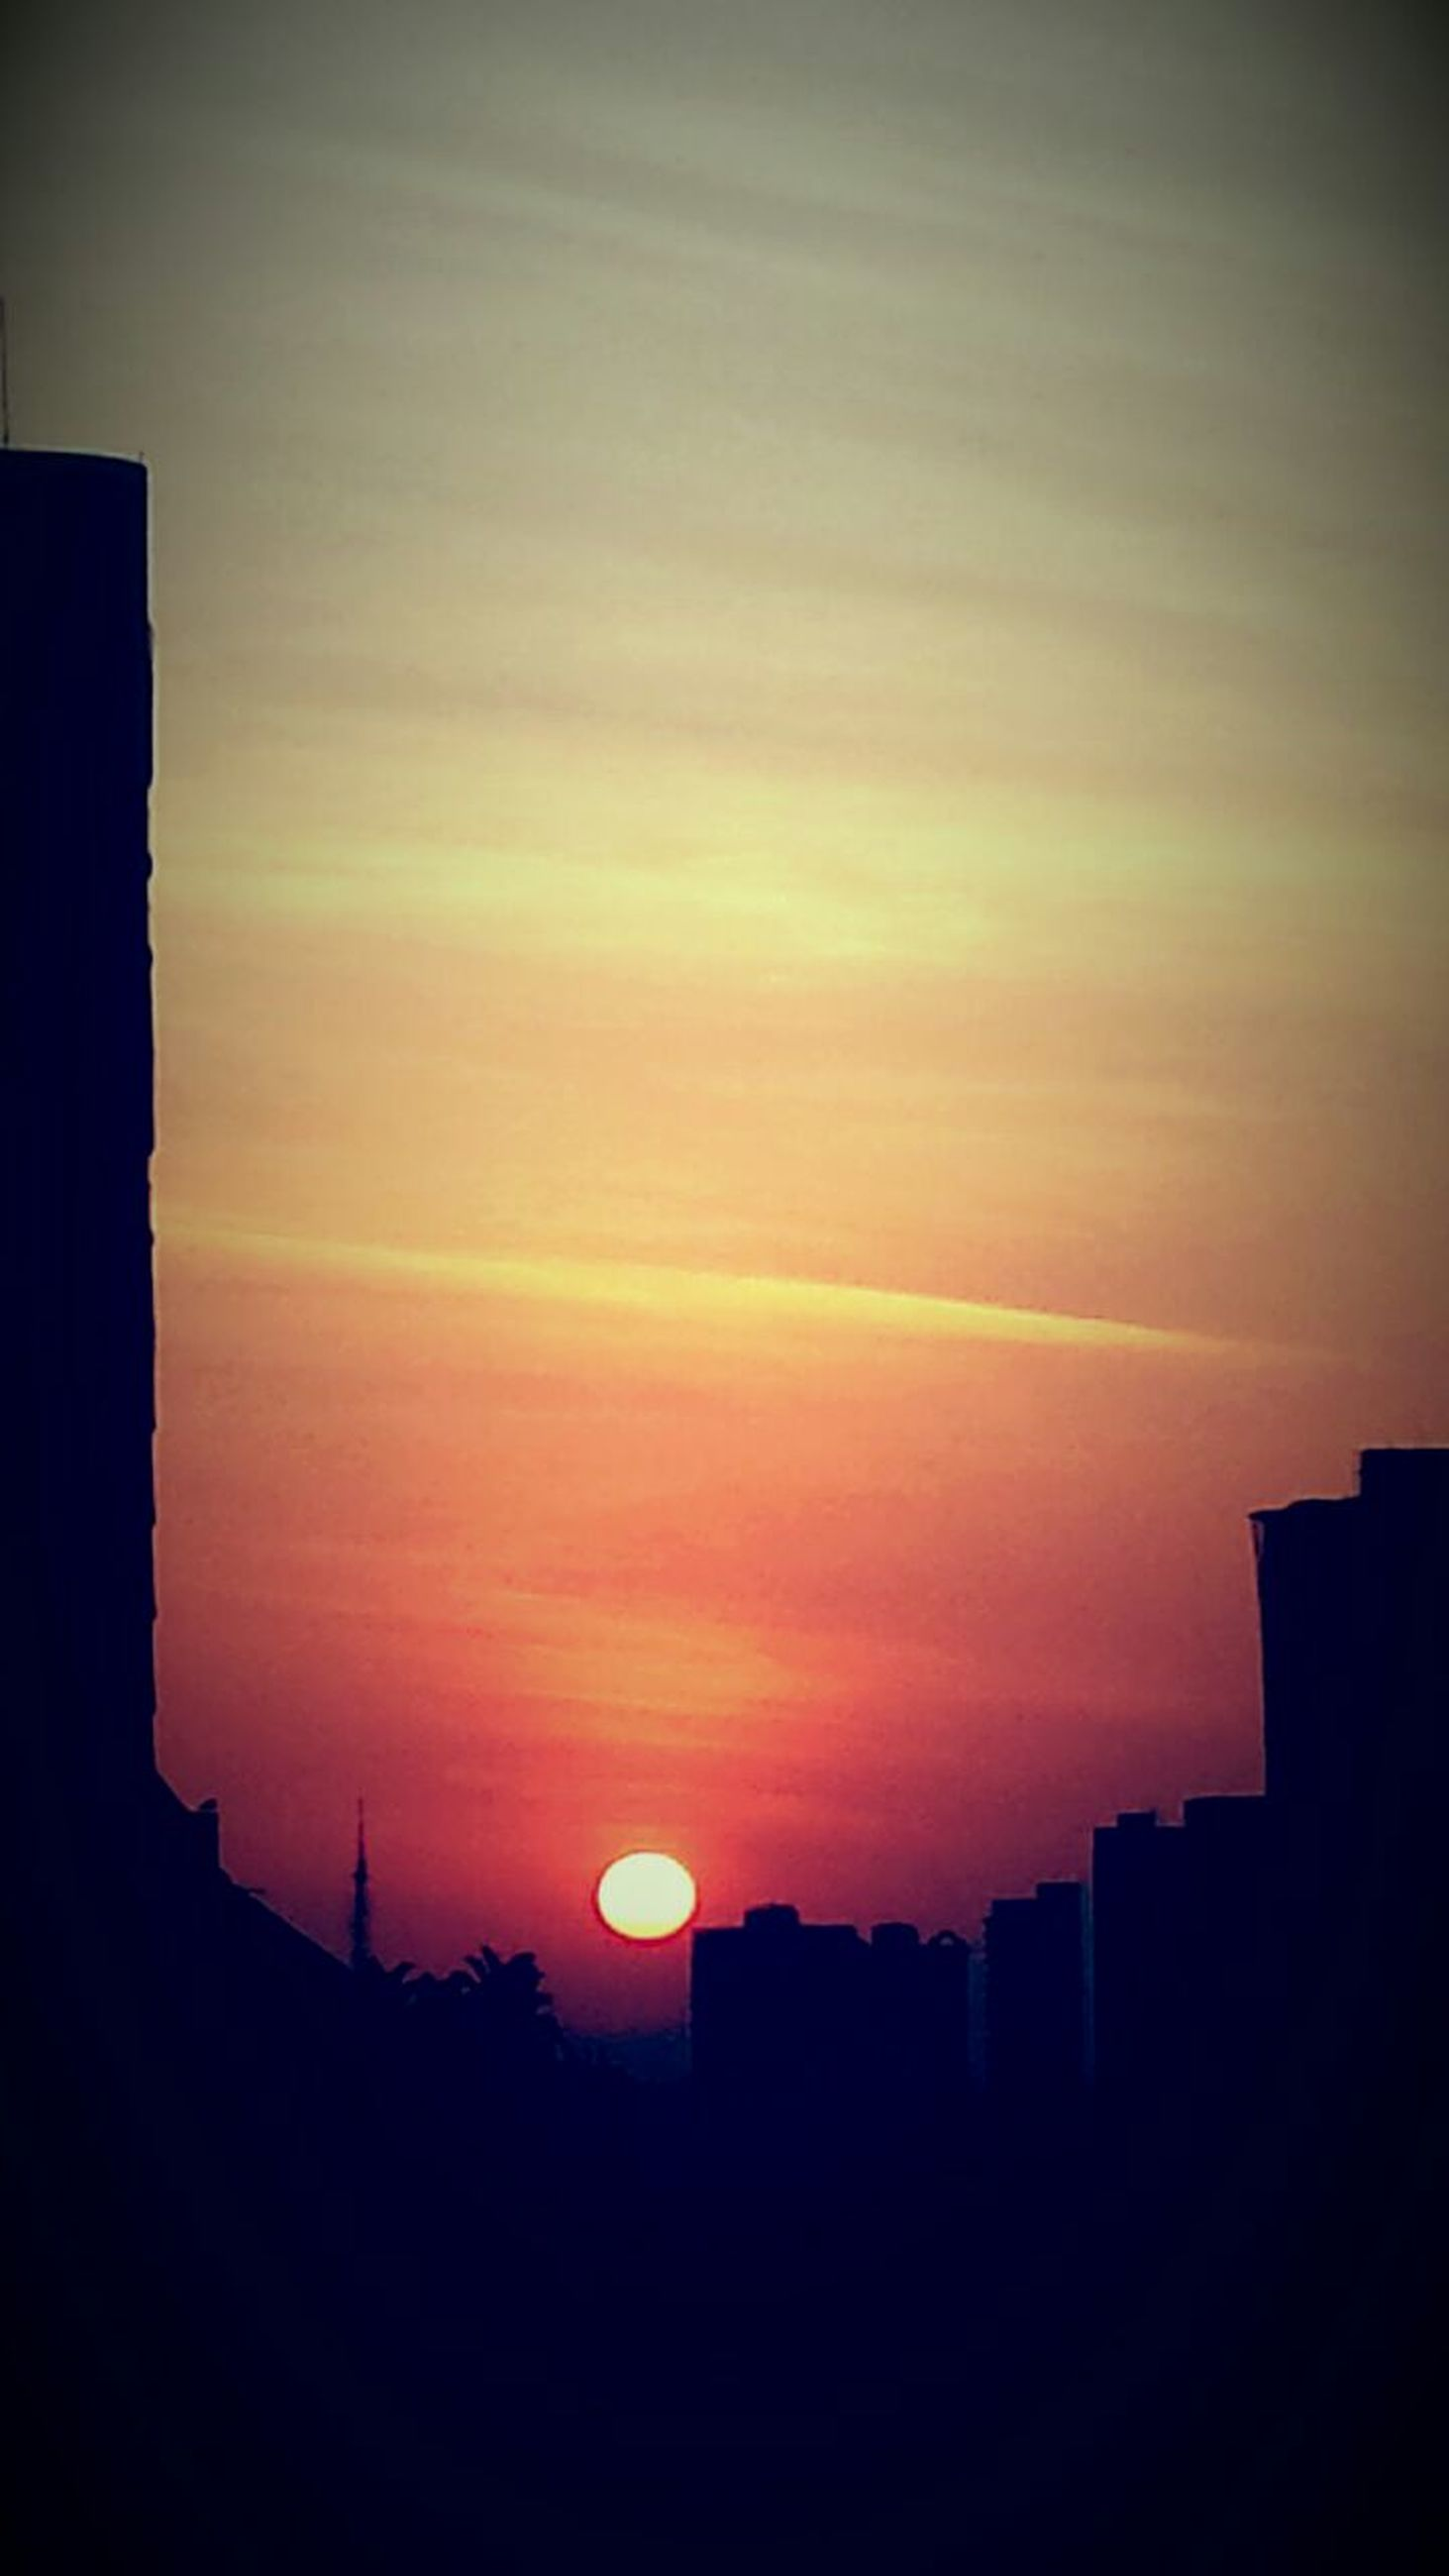 sunset, sky, built structure, no people, silhouette, beauty in nature, architecture, nature, cloud - sky, scenics, outdoors